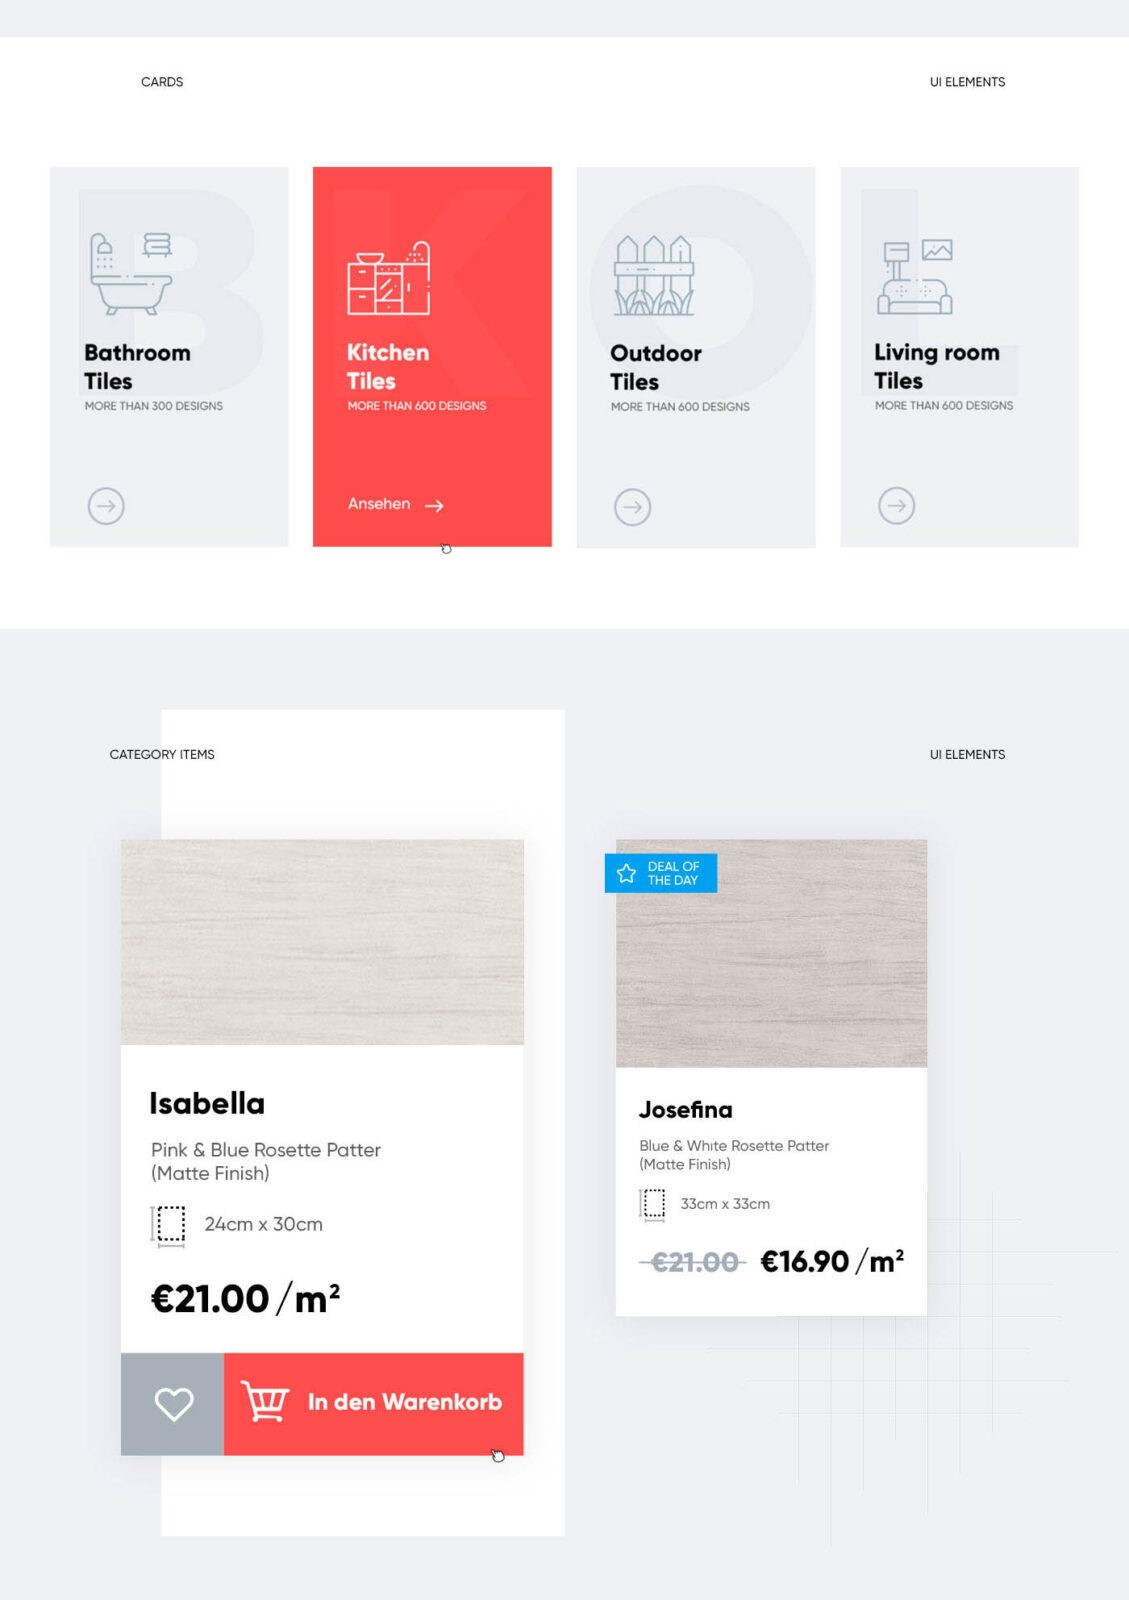 e-commerce, flooring, ui viking, alex borisson, designer, portfolio, ui designer, designer portfolio, creative, product designer, graphic designer, inspiration, car wash, car wash website